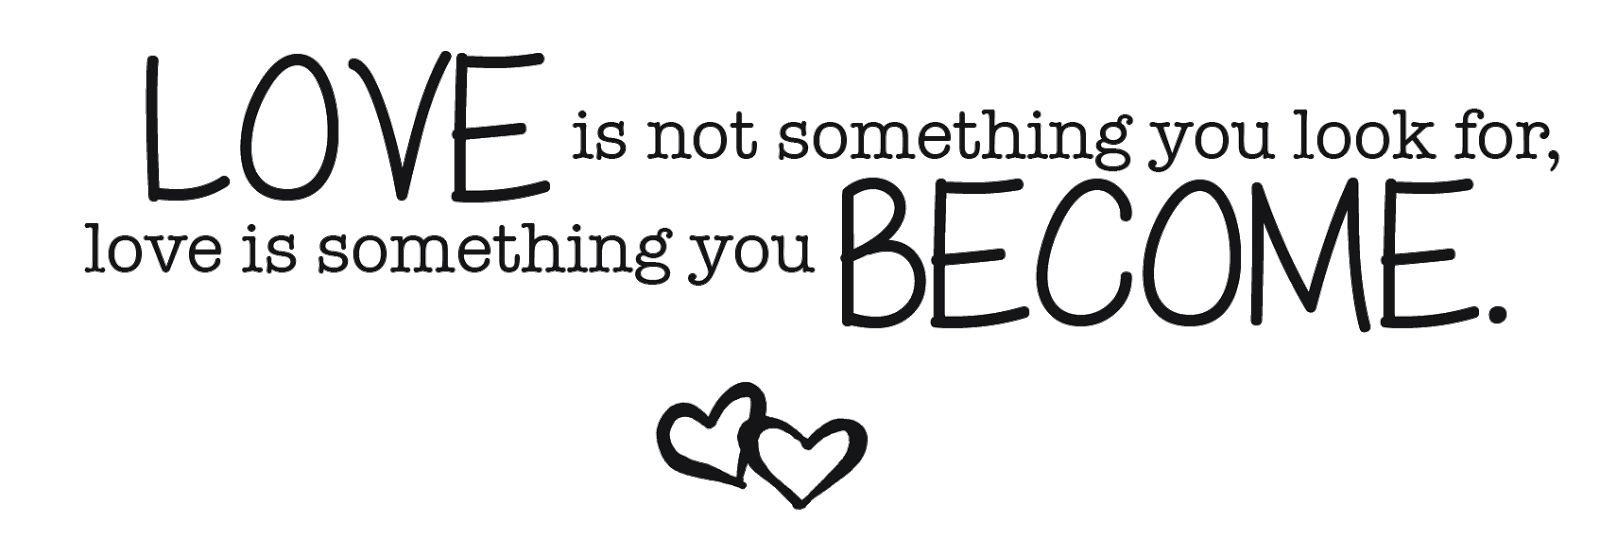 love words png